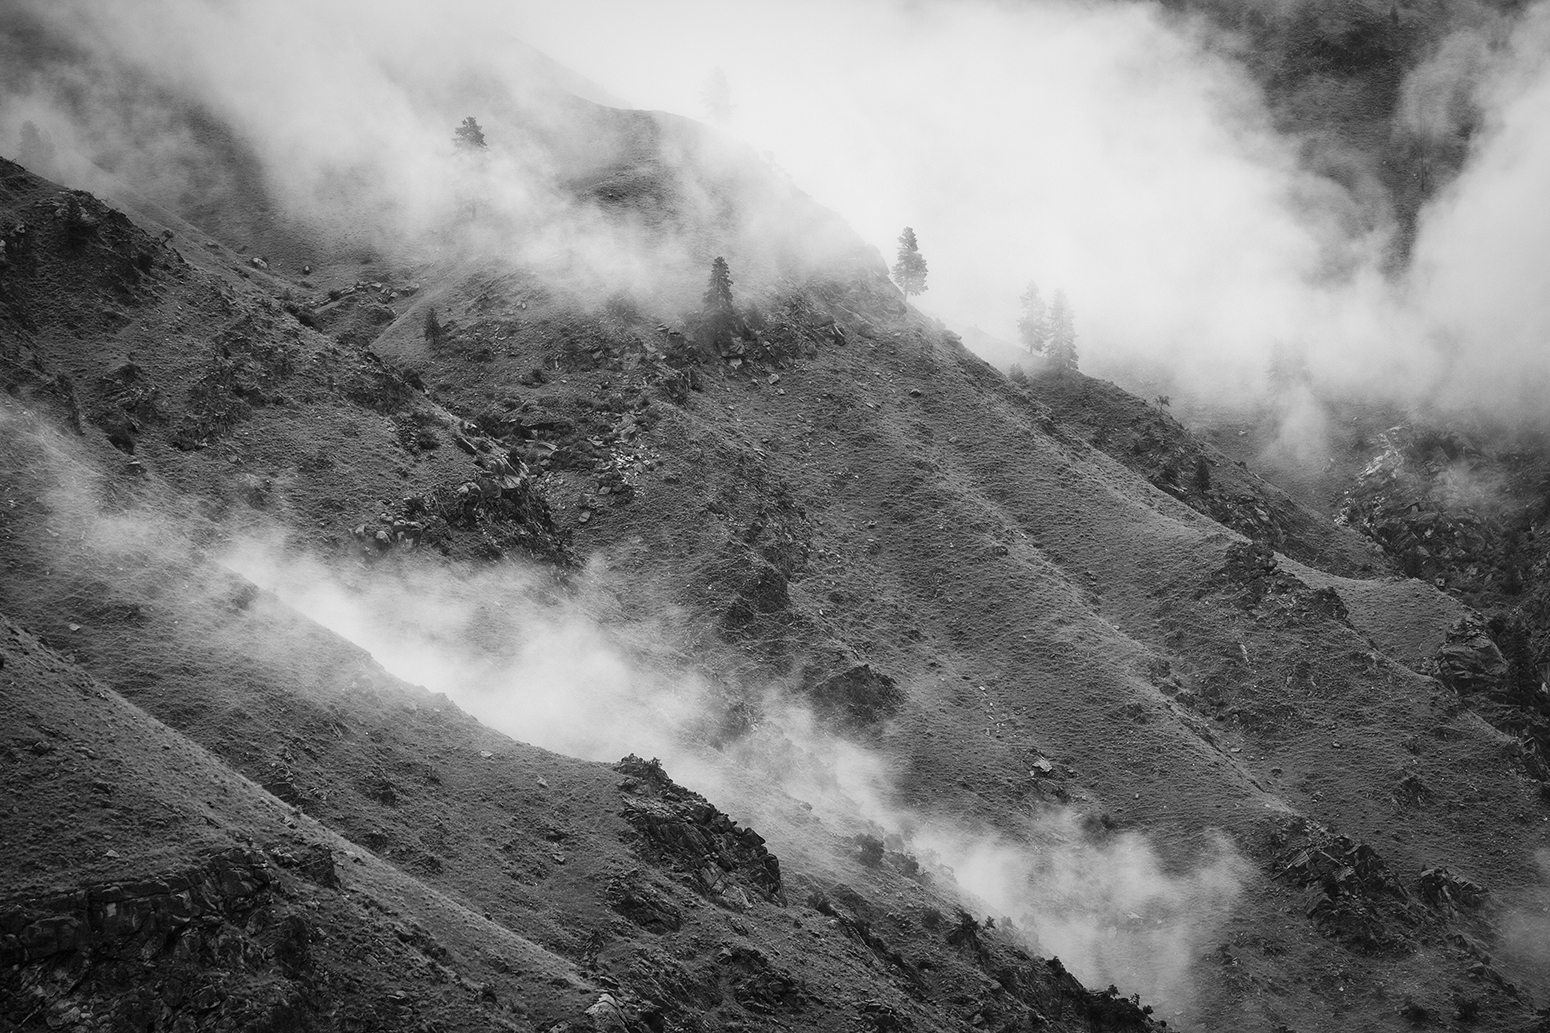 Mountain mist high above the lower strtetches of the River of No Return during the epic rains of spring 2010.